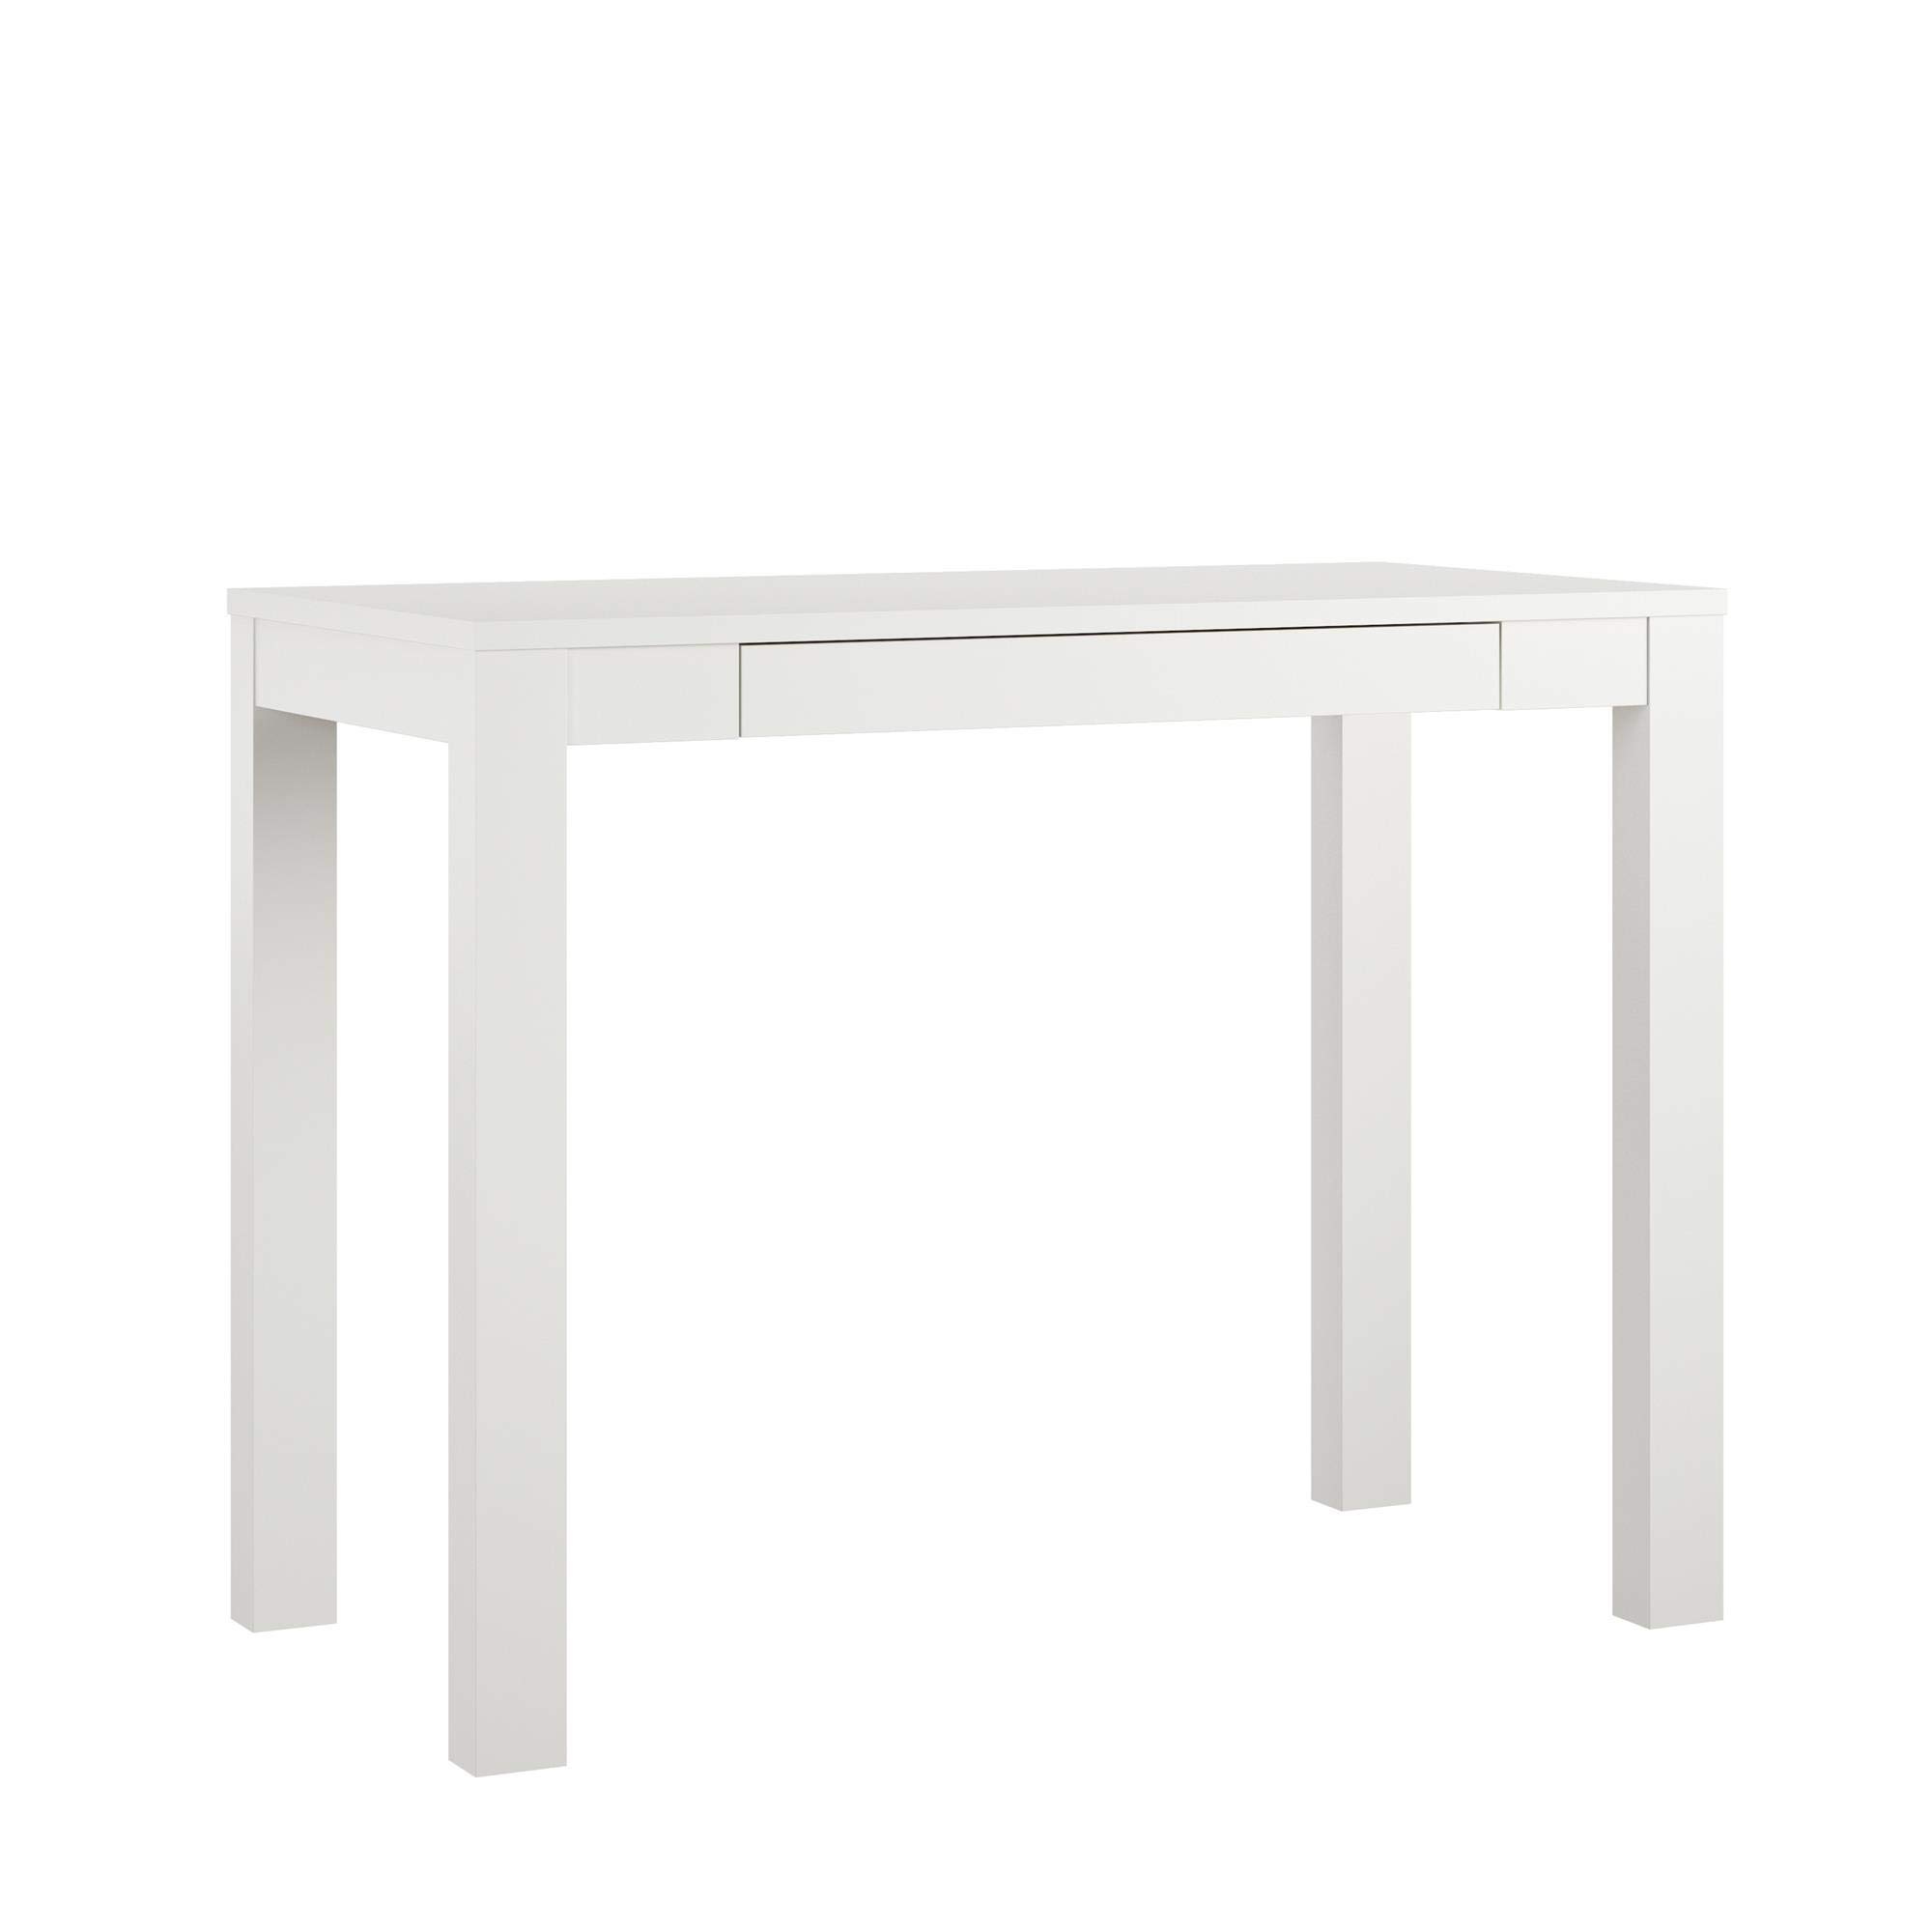 AmazonBasics Wooden Desk with Drawer - 39-Inch, White